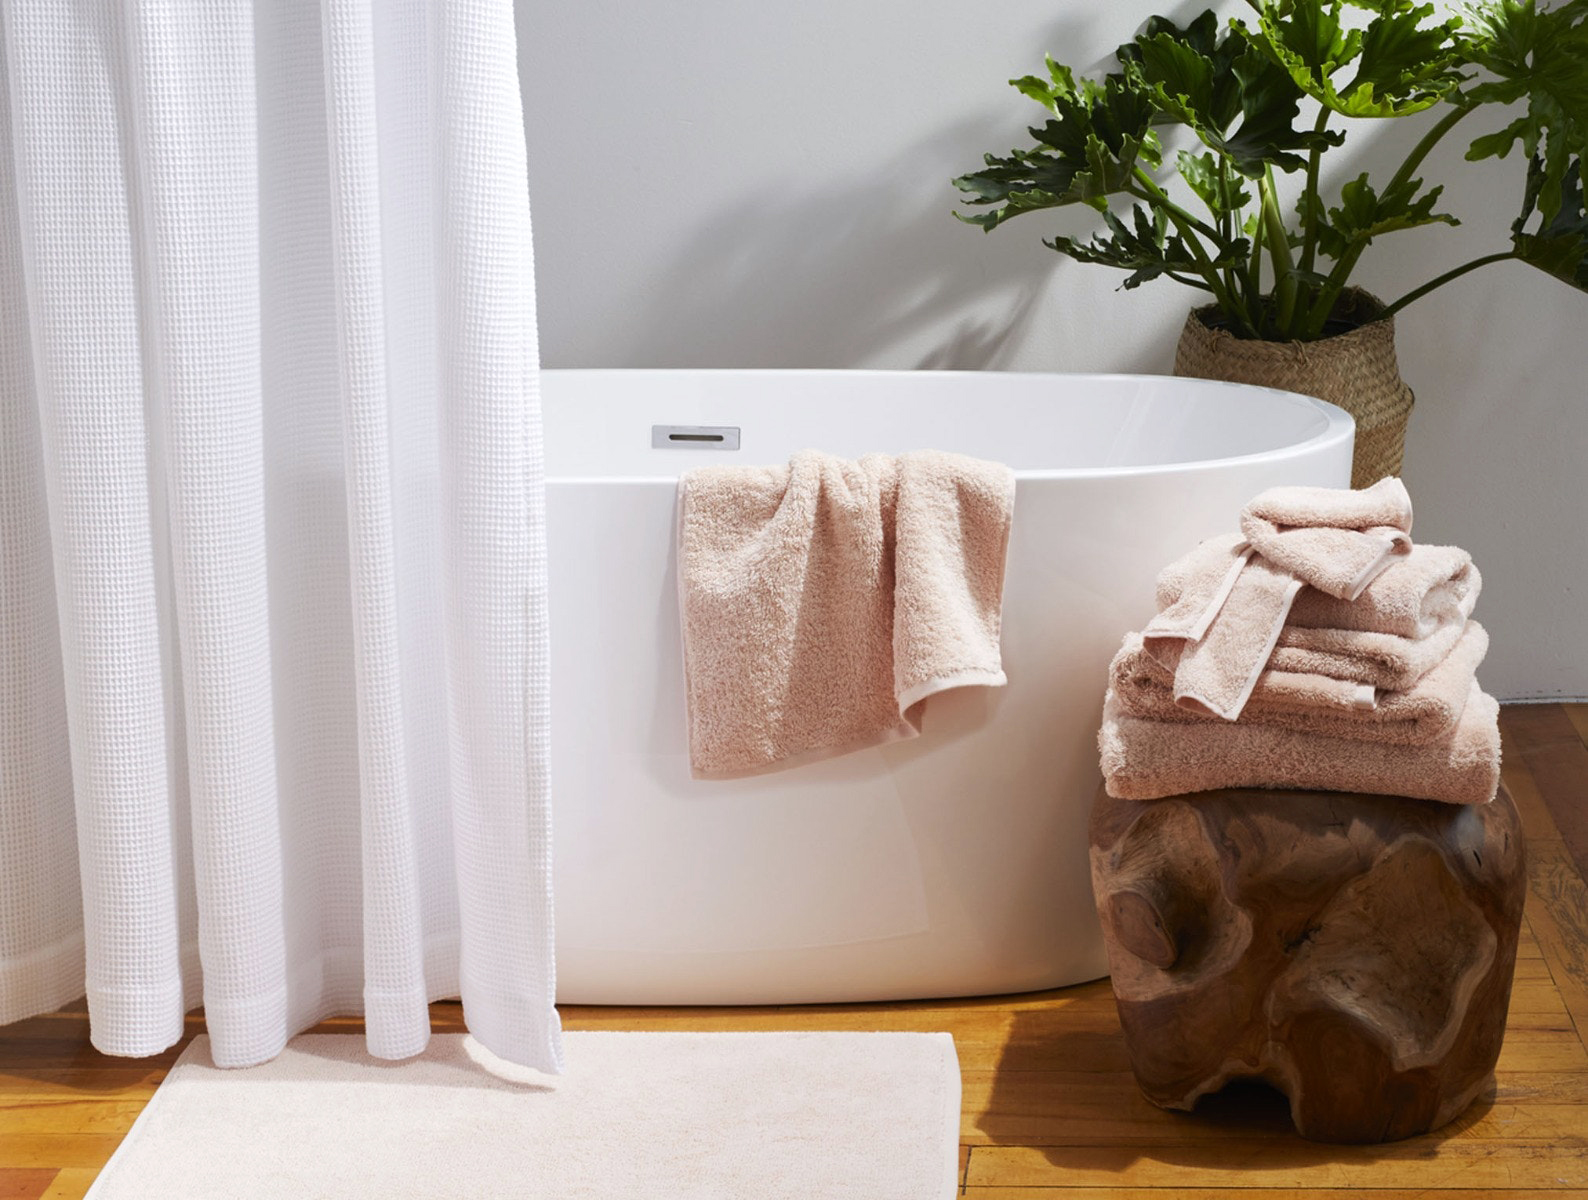 neutral towels by a white soaking tub